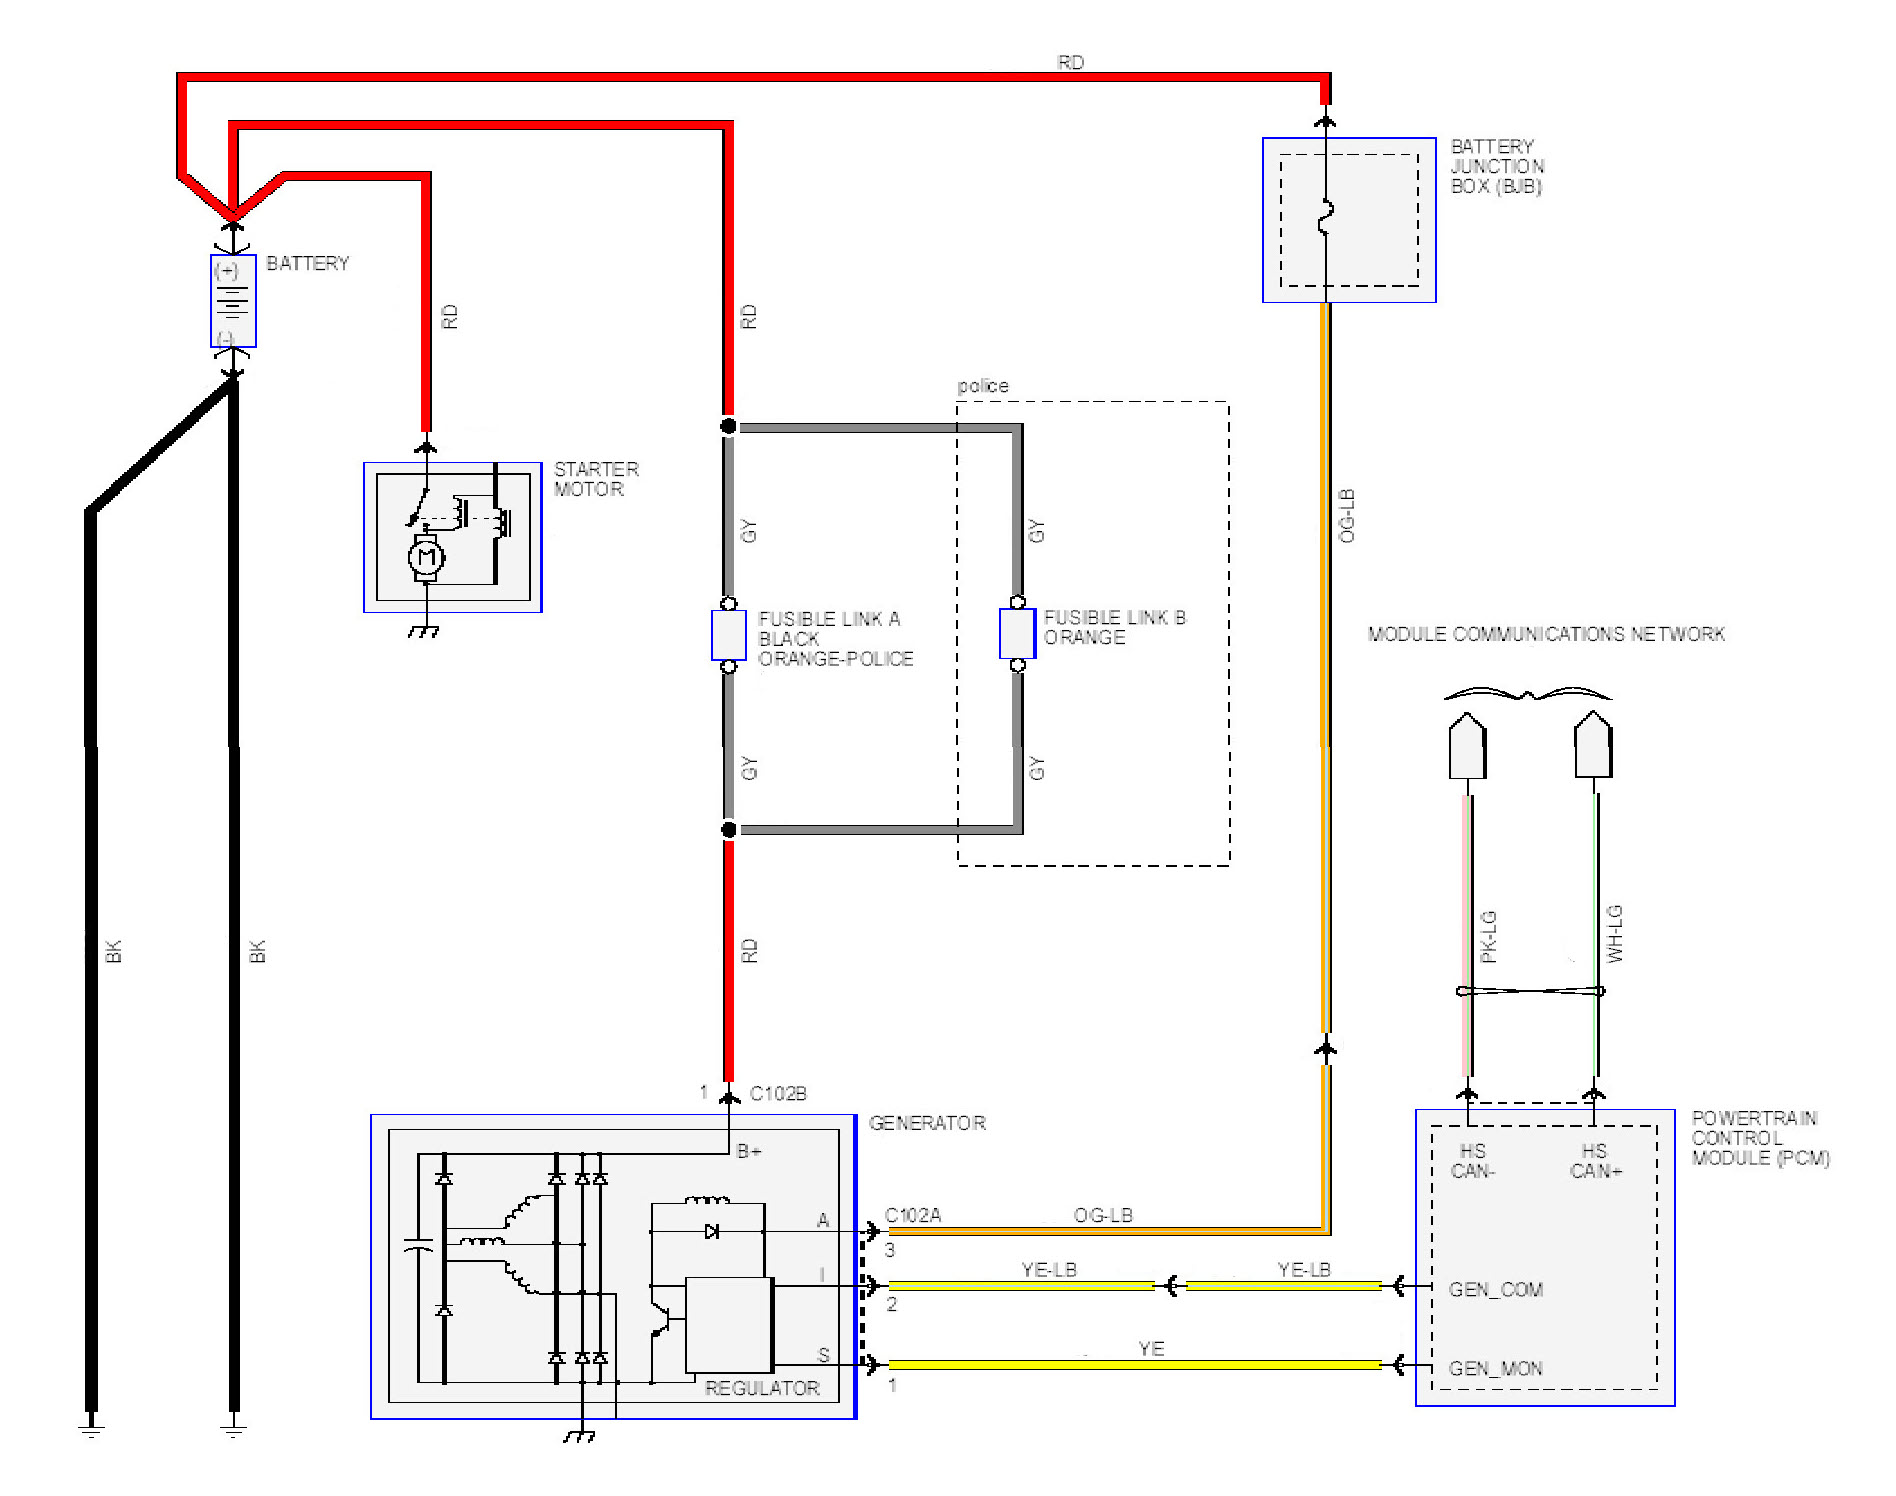 10crownviccharge ford crown victoria alternator wiring diagrams wiring diagram of car alternator at gsmportal.co